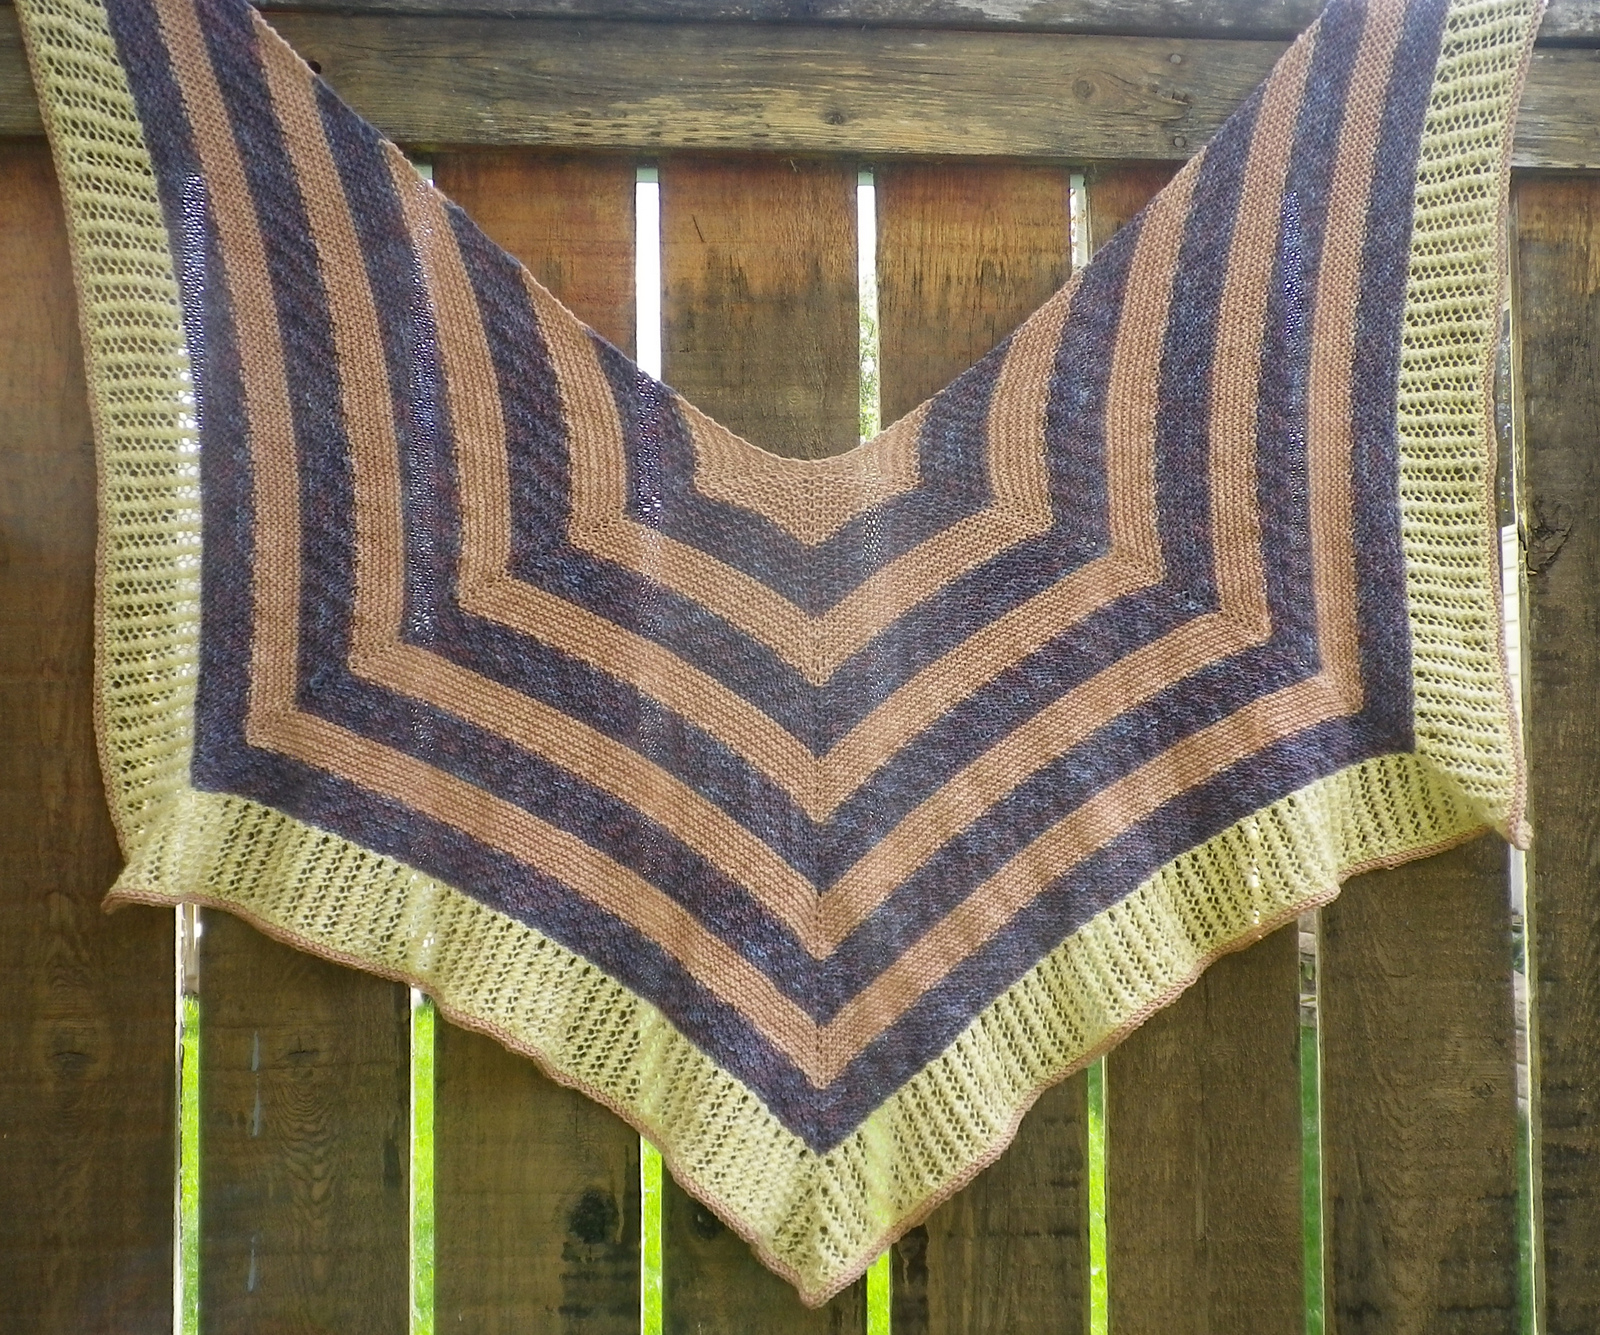 Rafu-Sen Shawl by Susan Elizabeth of CrescentMoonCollective.com